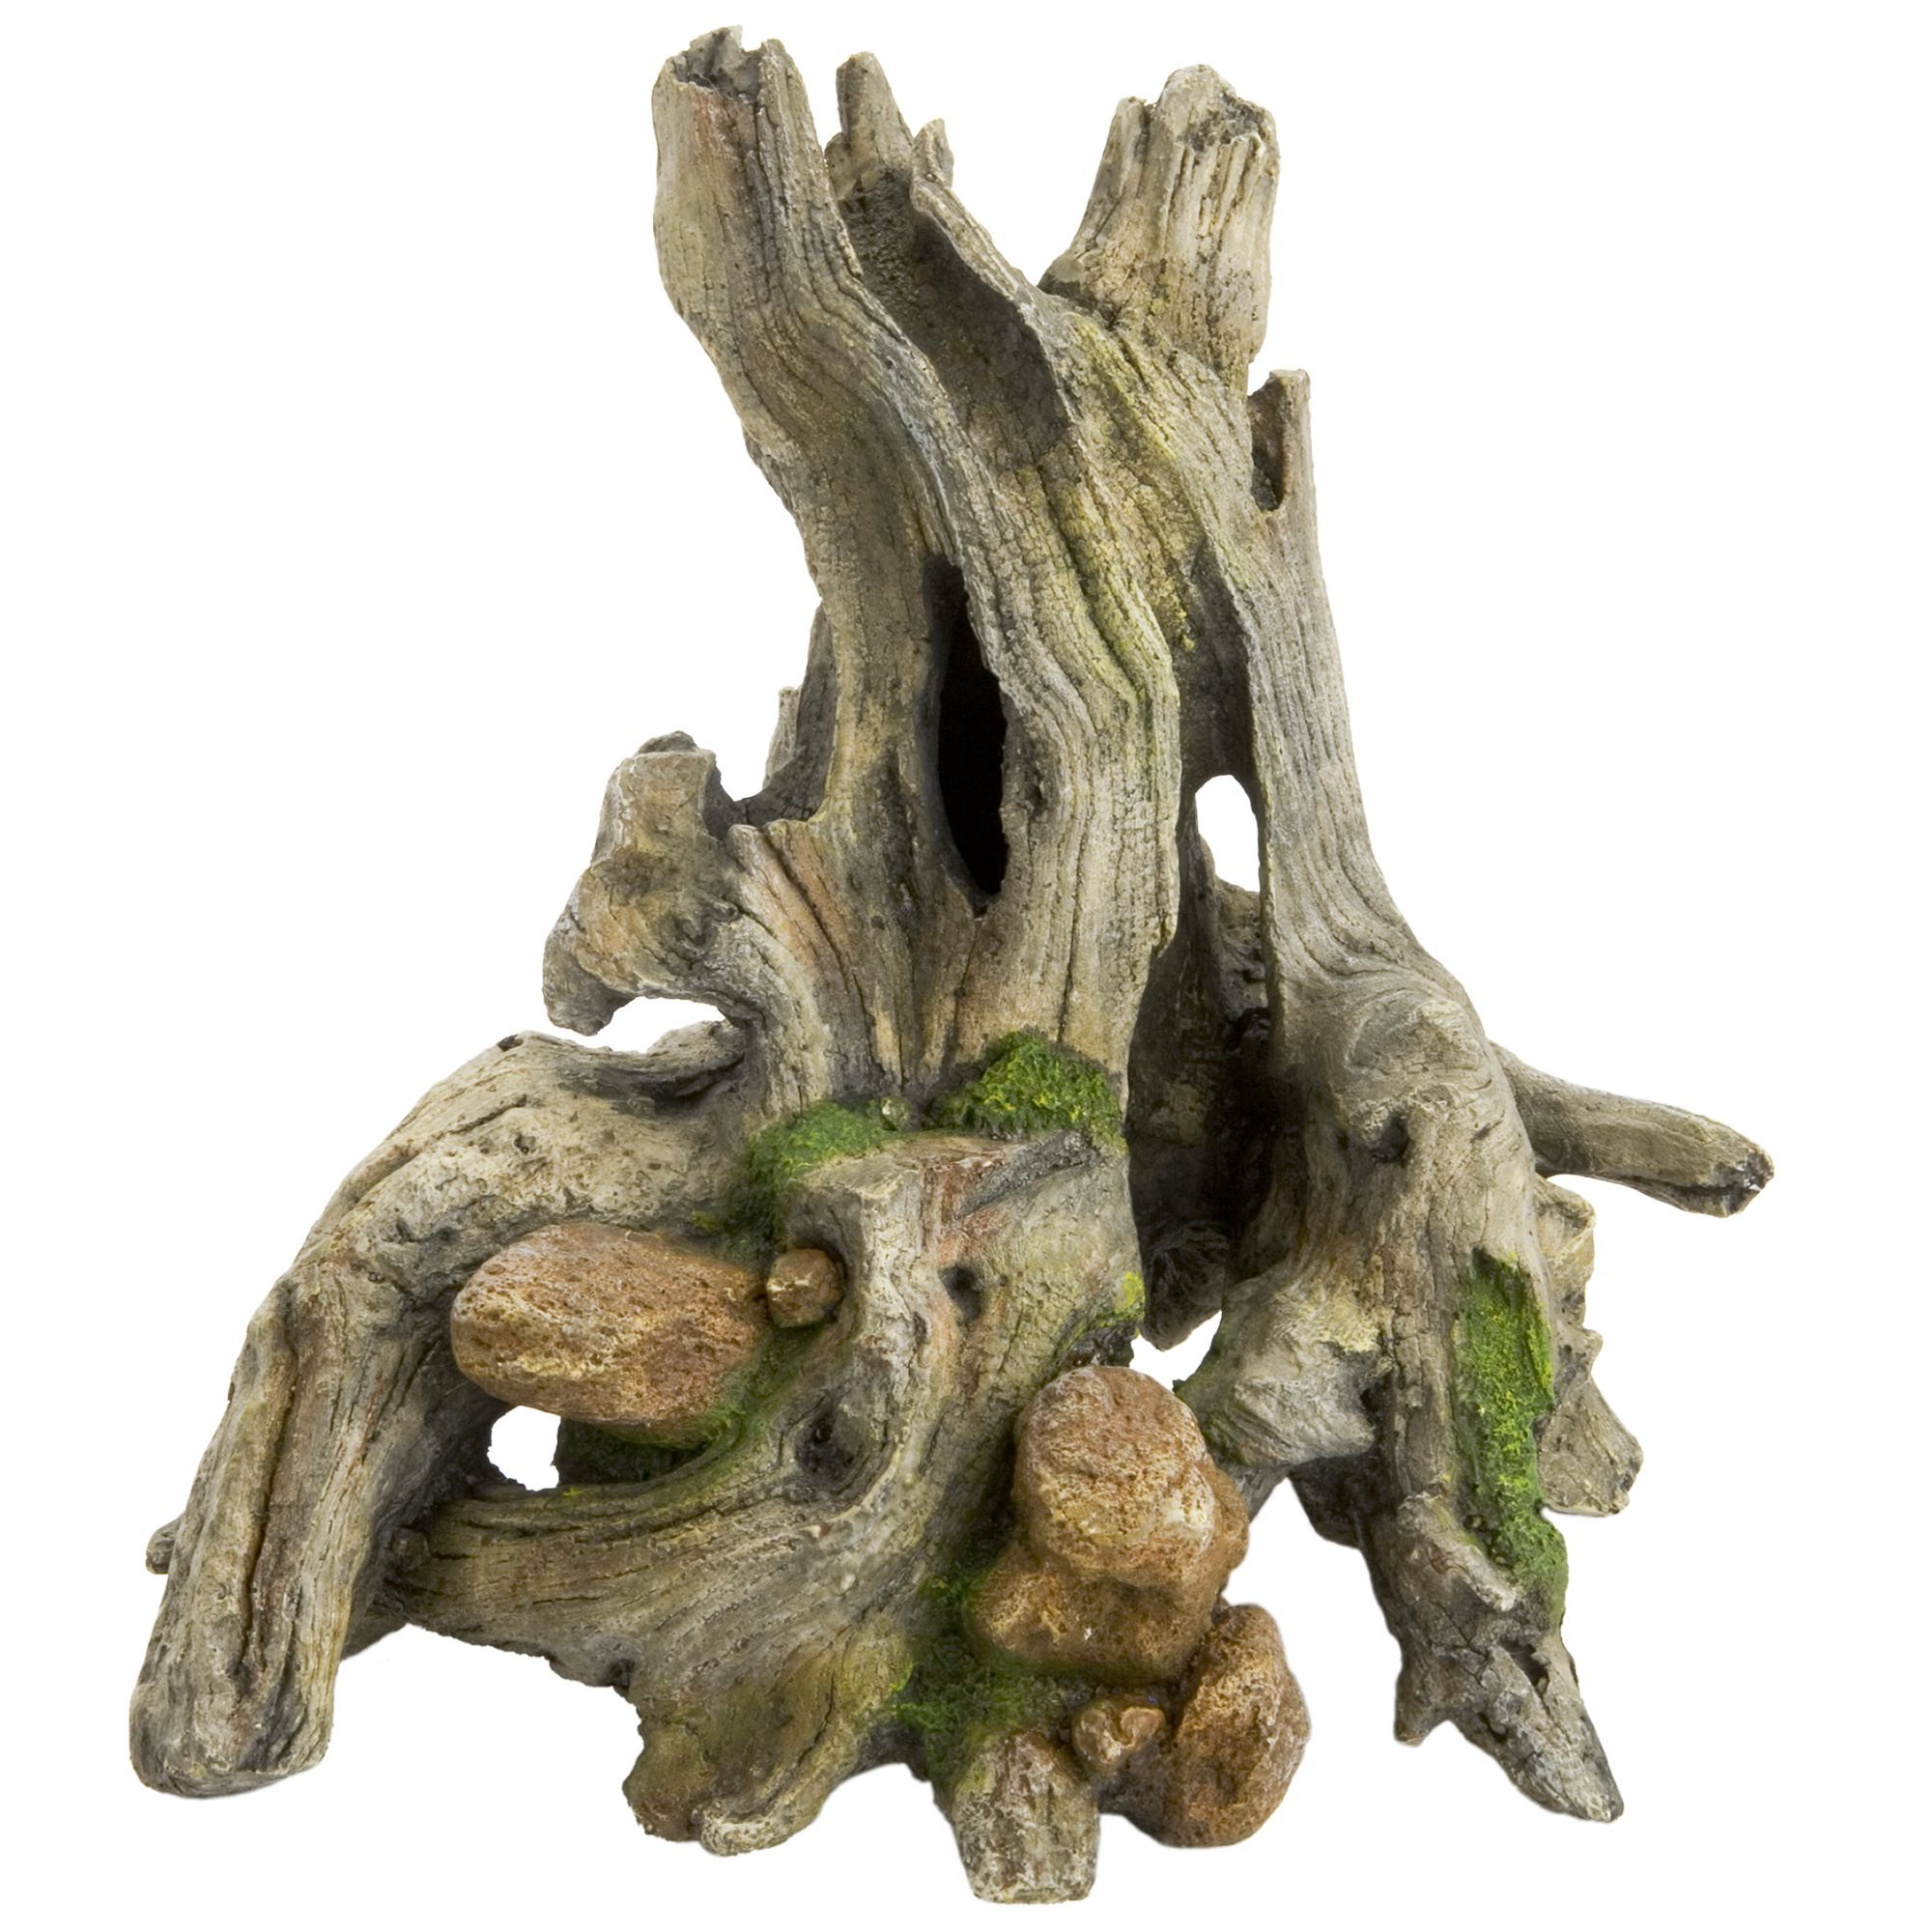 Top Fin Mossy Driftwood Aquarium Ornament In 2020 Aquarium Ornaments Aquarium Driftwood Aquarium Decorations